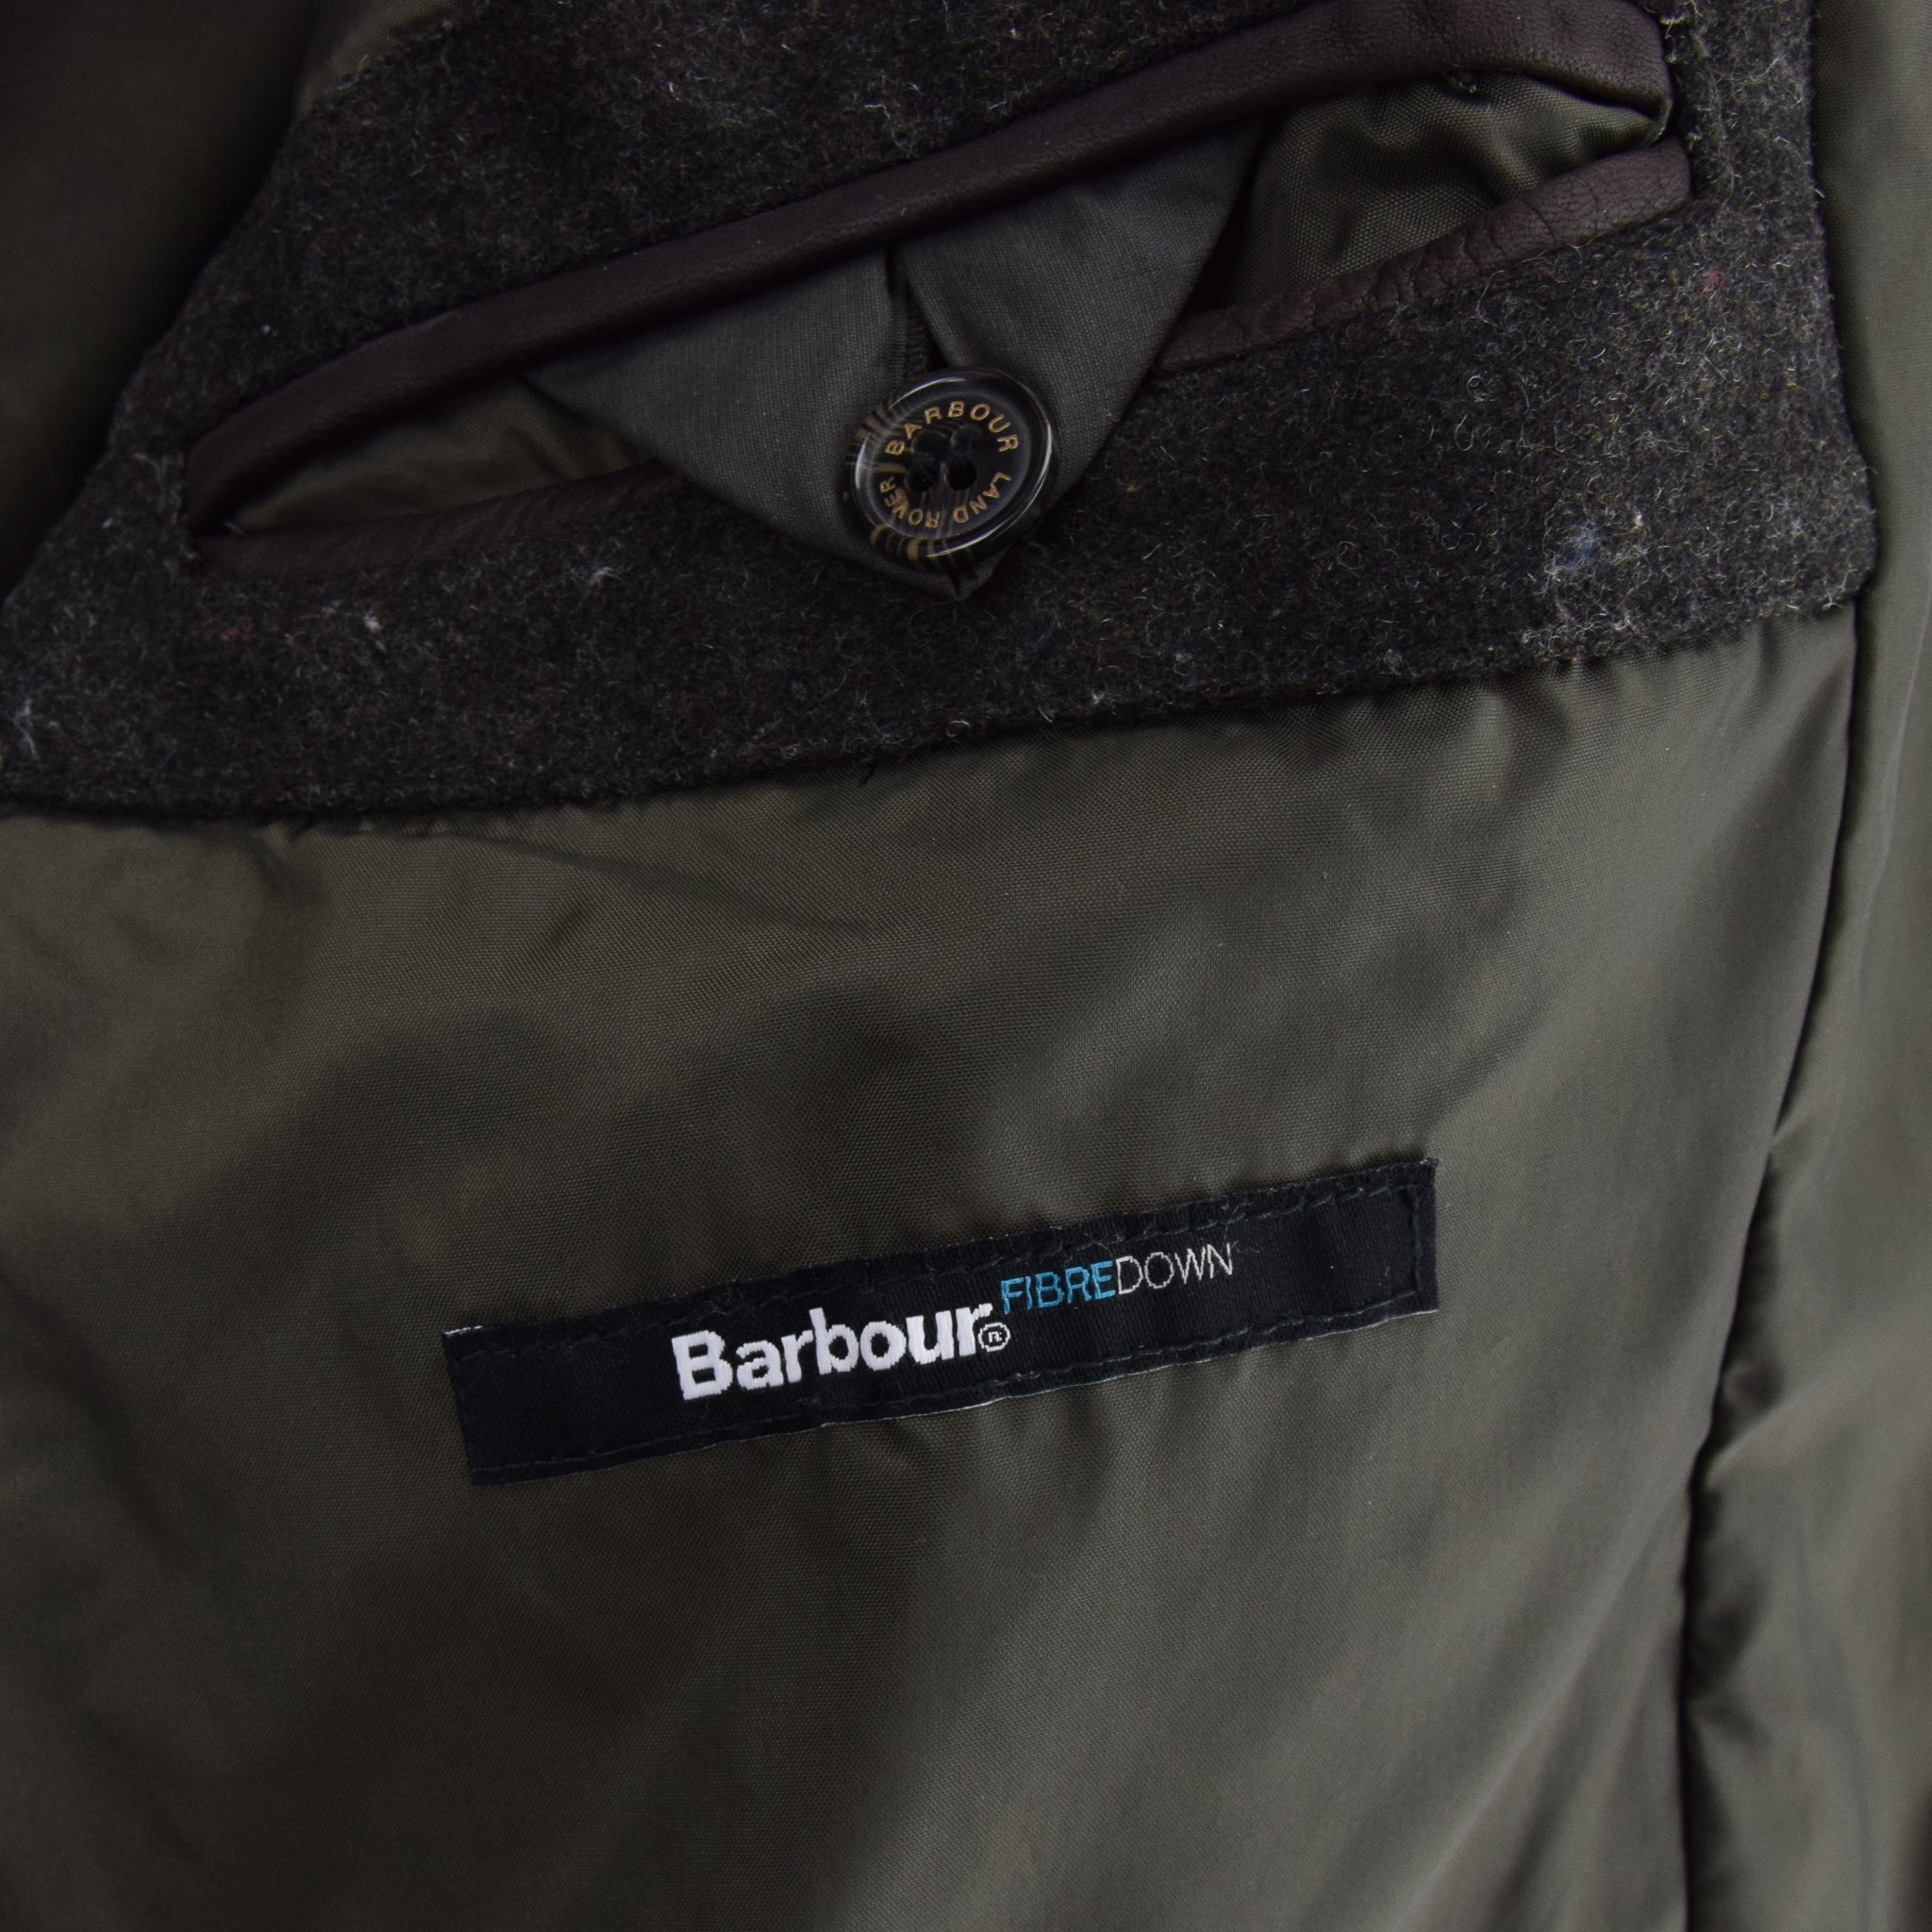 Barbour Land Rover Green Quilted Coat Fibre Down Jacket M label